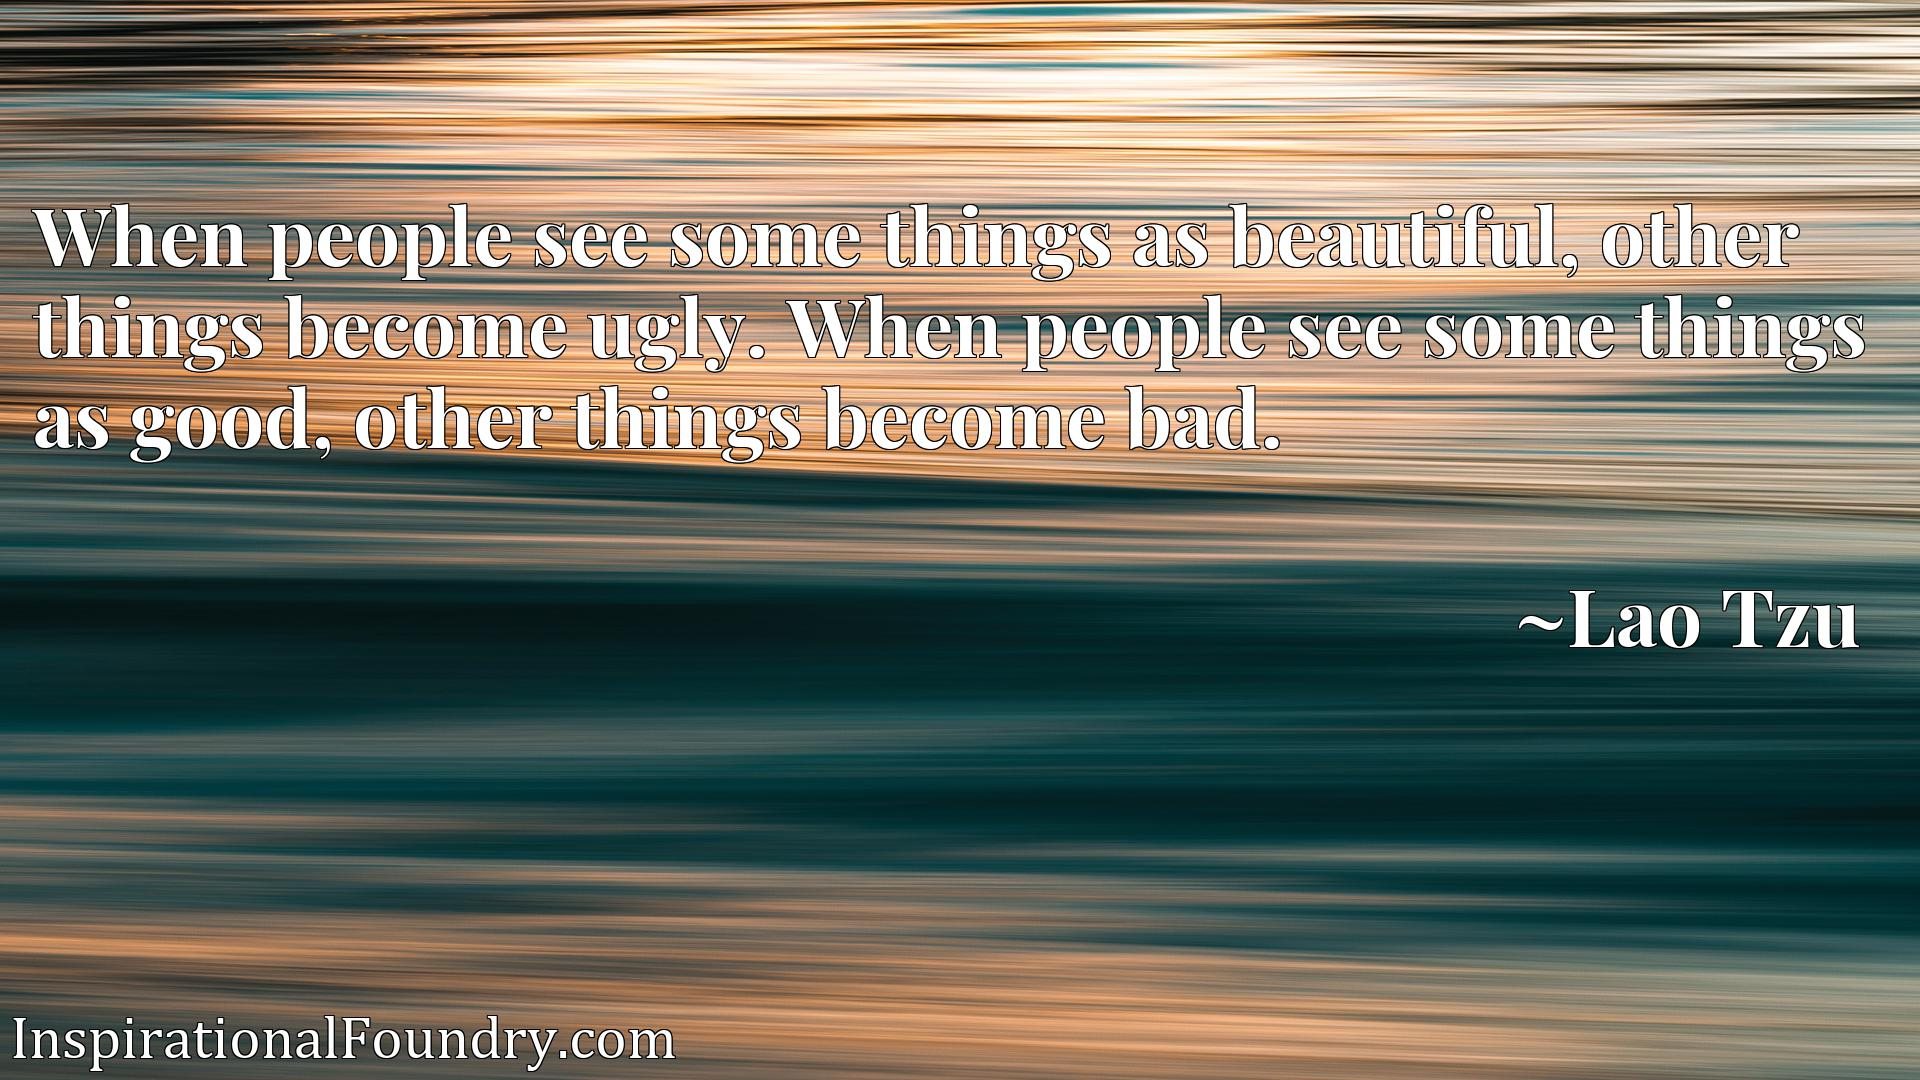 When people see some things as beautiful, other things become ugly. When people see some things as good, other things become bad.